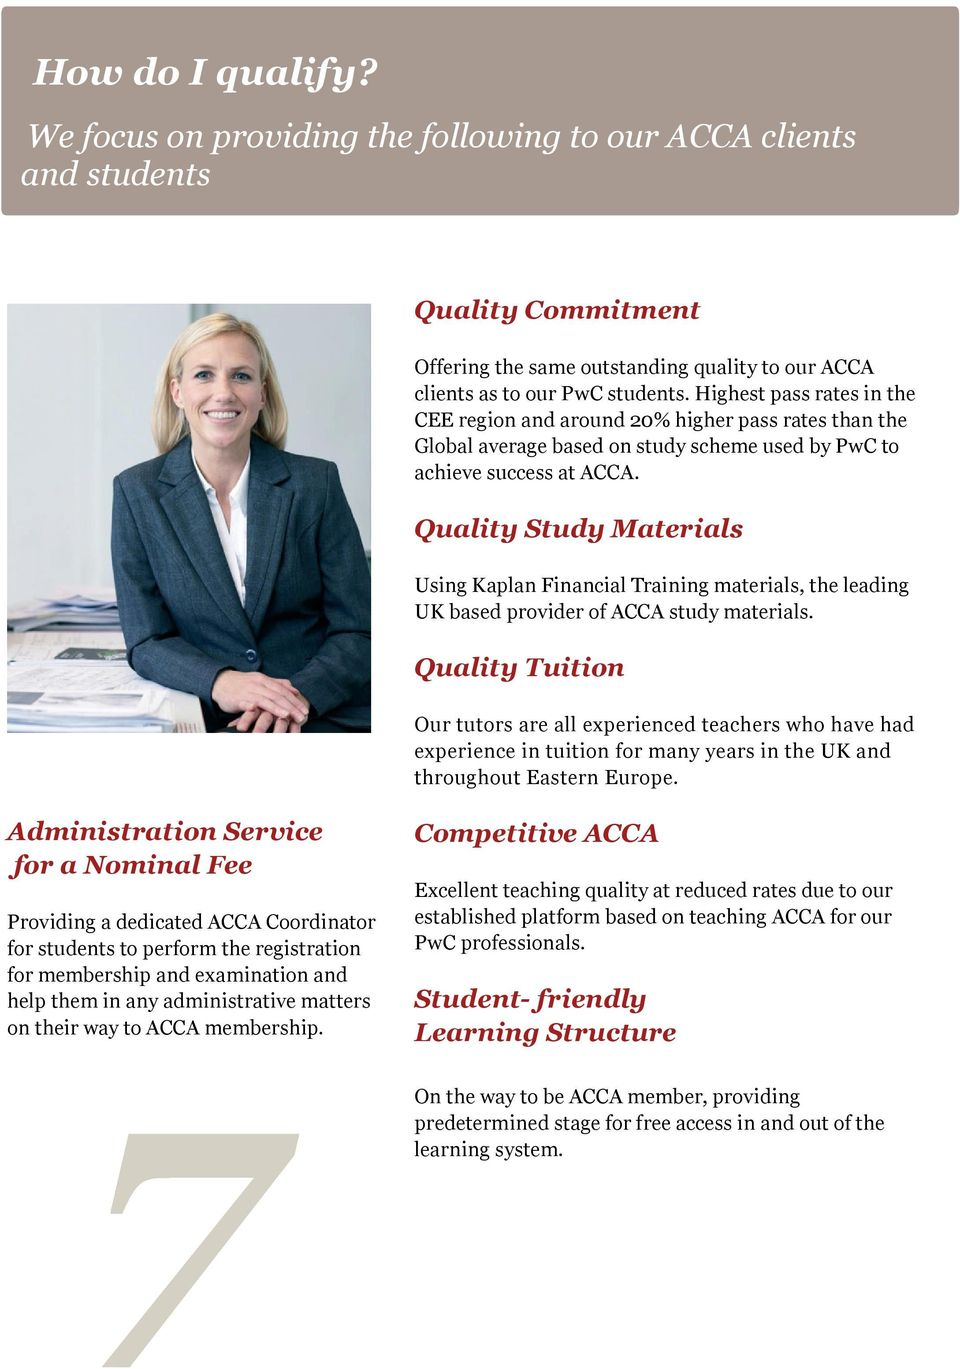 Quality Study Materials Using Kaplan Financial Training materials, the leading UK based provider of ACCA study materials.